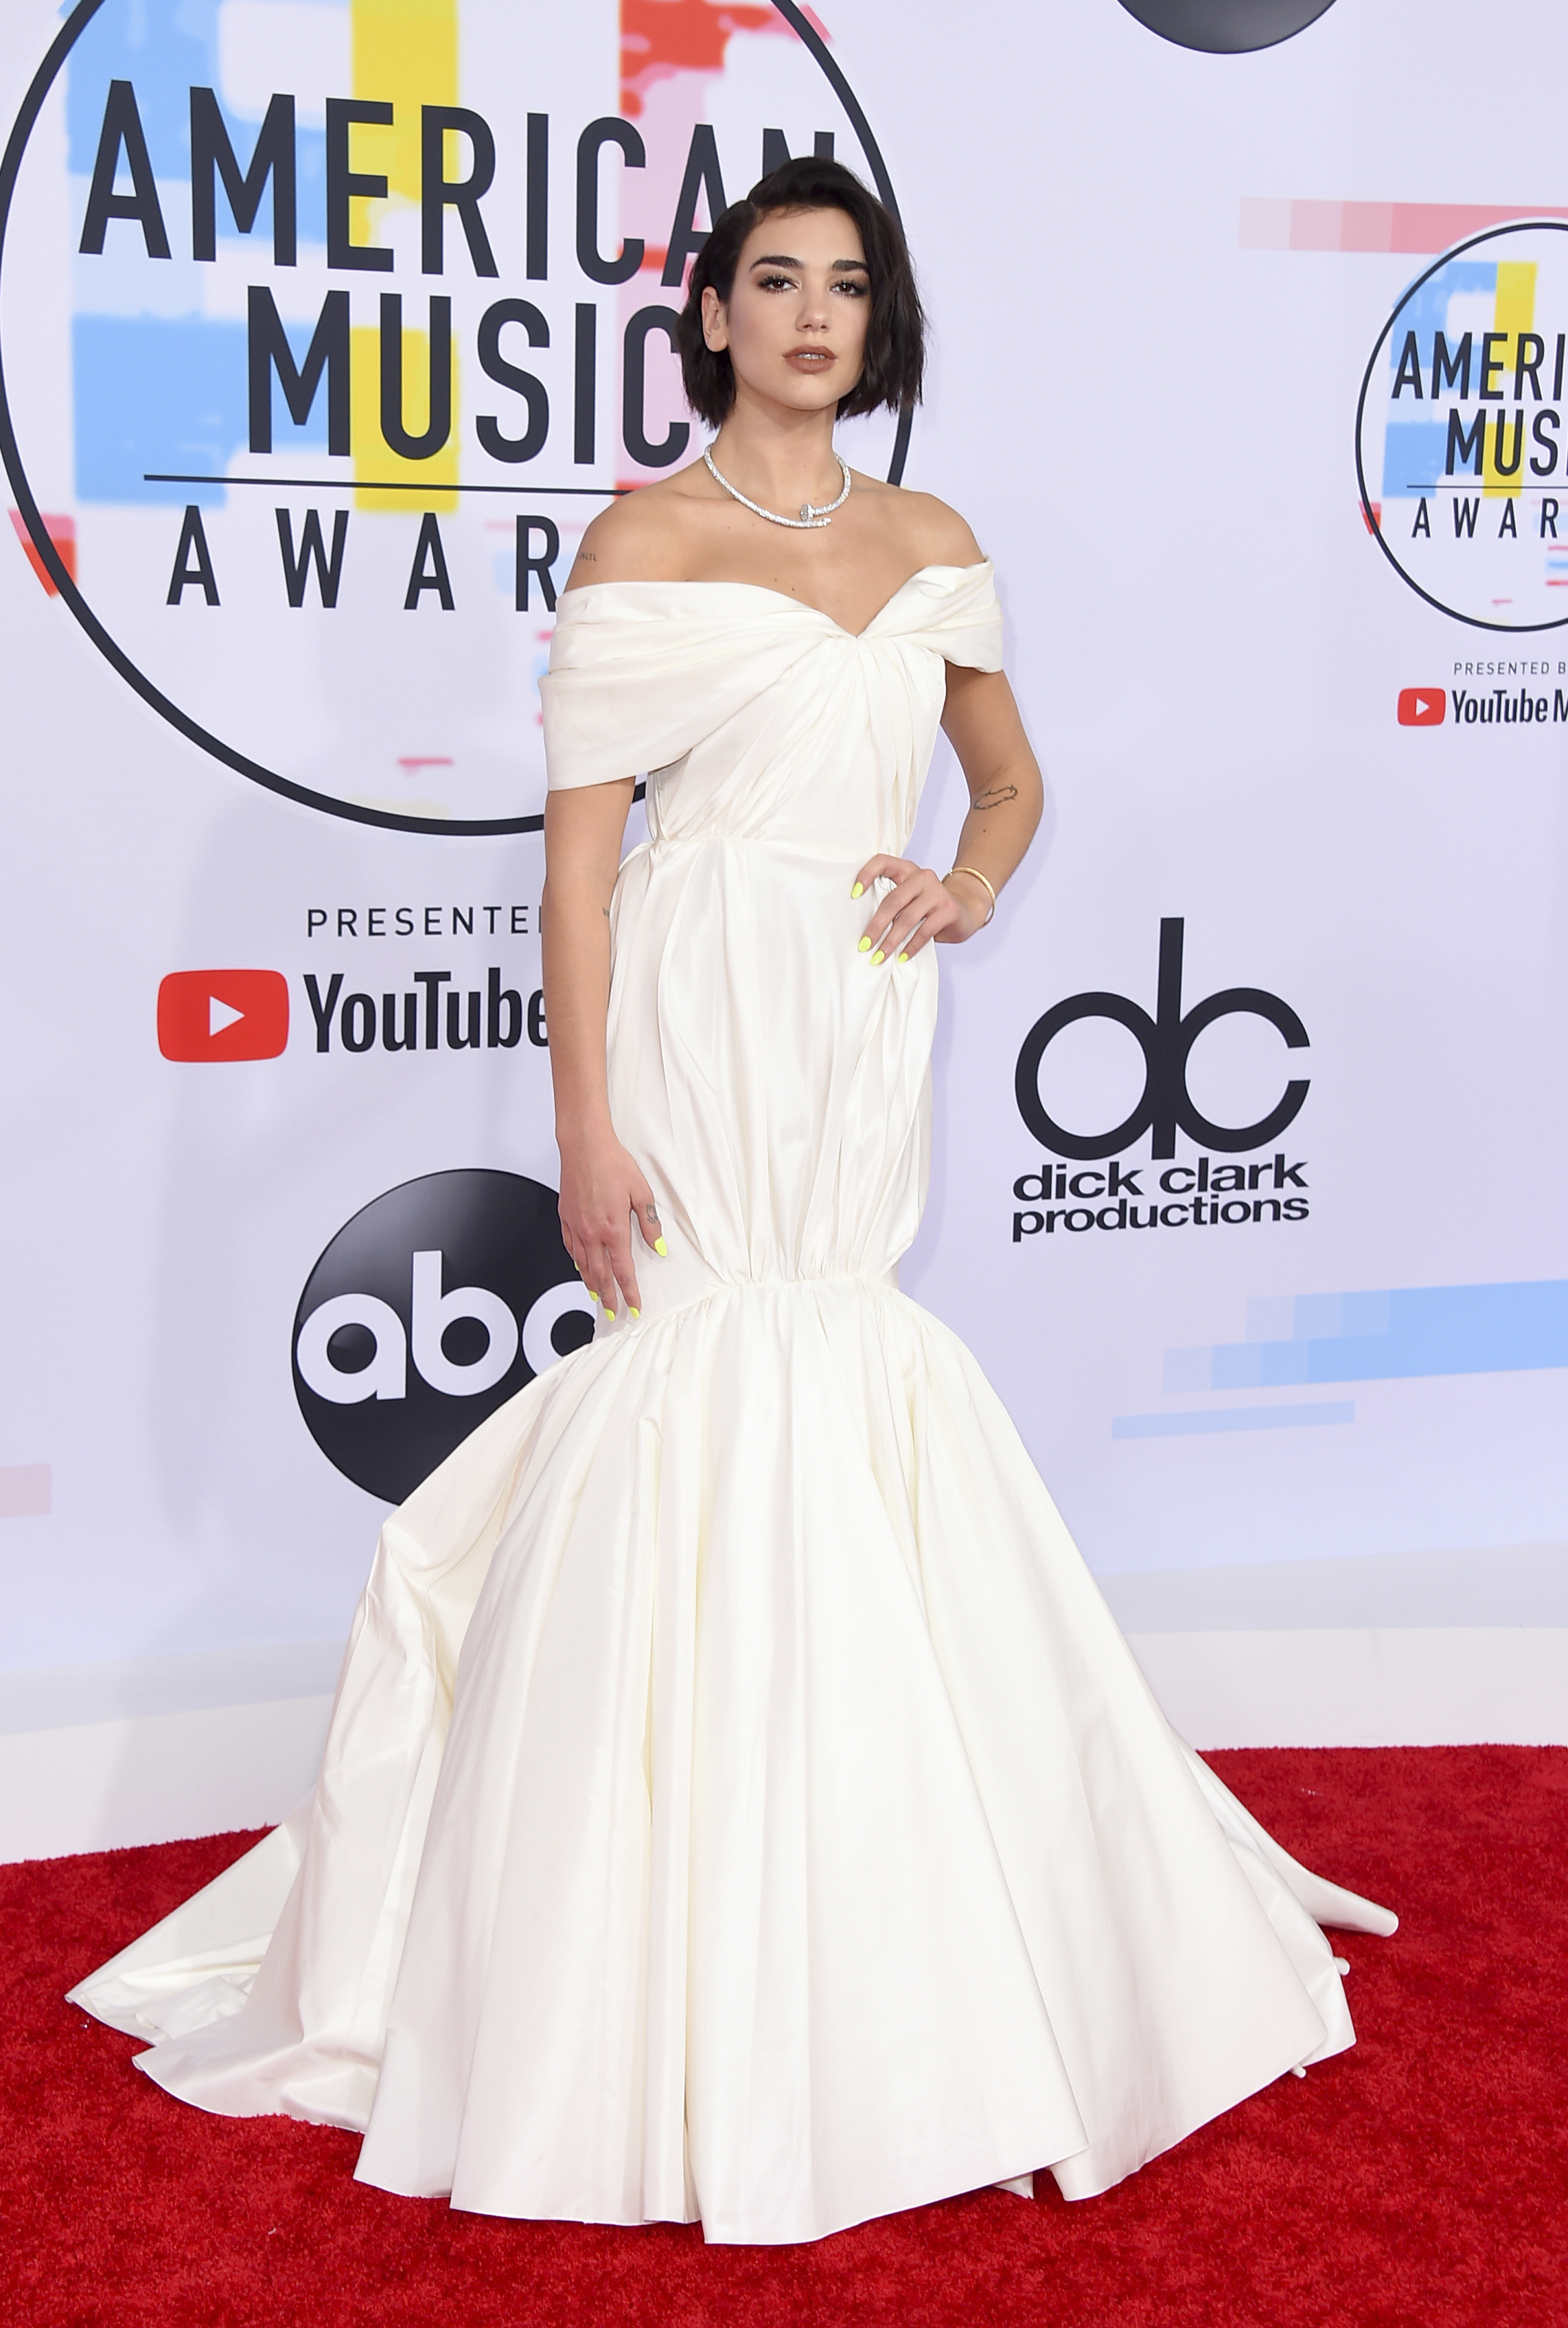 "<div class=""meta image-caption""><div class=""origin-logo origin-image none""><span>none</span></div><span class=""caption-text"">Dua Lipa arrives at the American Music Awards on Tuesday, Oct. 9, 2018, at the Microsoft Theater in Los Angeles. (Photo by Jordan Strauss/Invision/AP) (Jordan Strauss/Invision/AP)</span></div>"